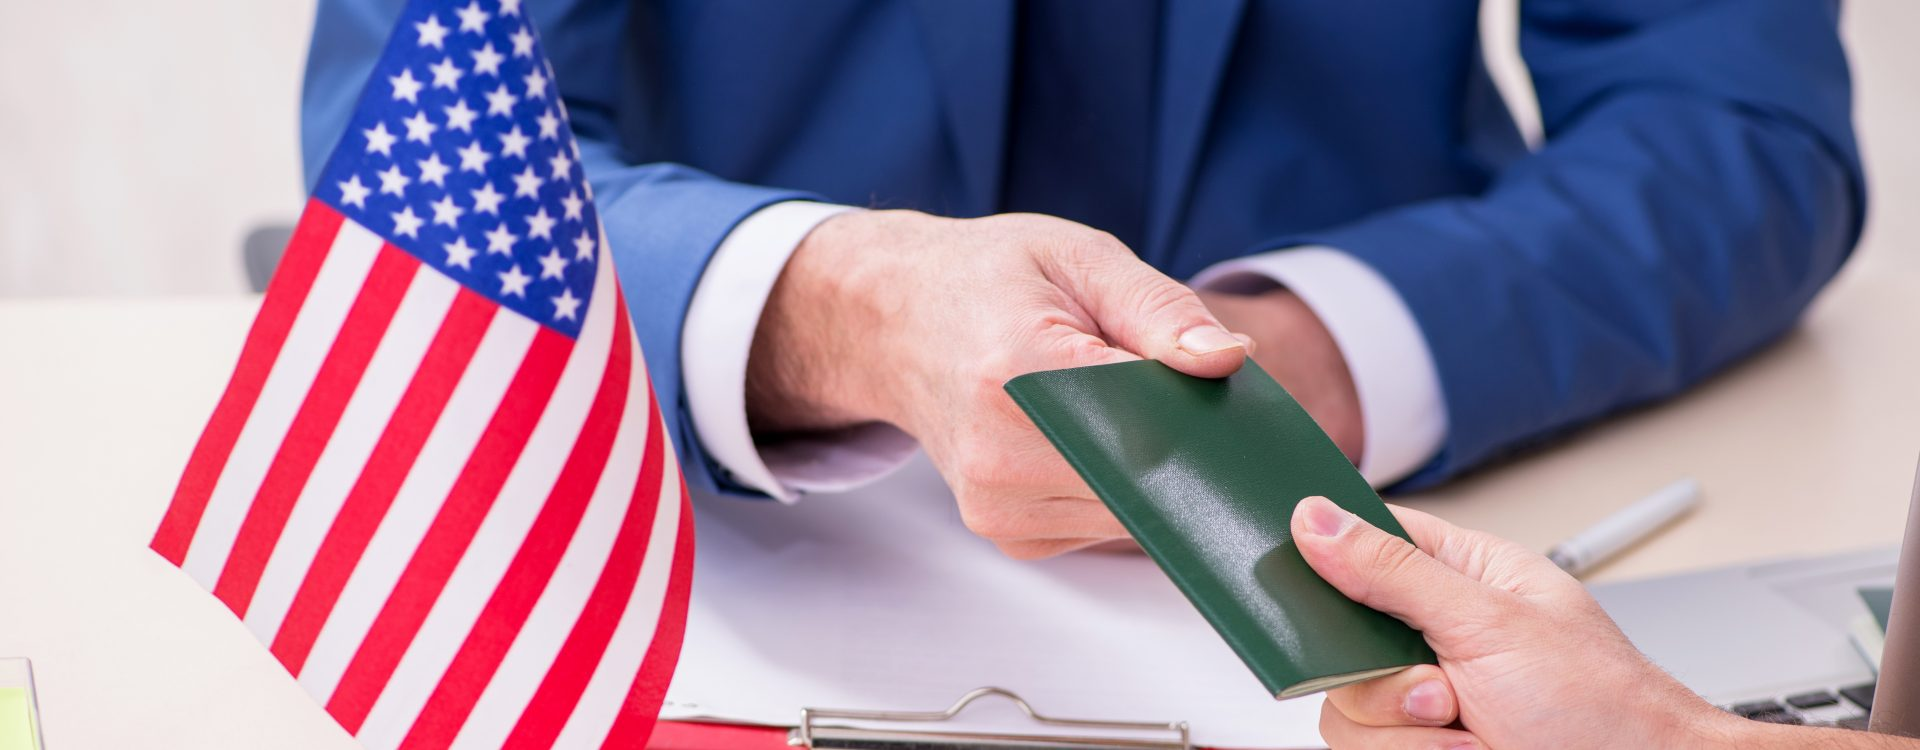 BEGINNING MARCH 4TH: NEW CHANGE TO REDUCE FAMILIAL SEPARATION DURING IMMIGRATION PROCESSING